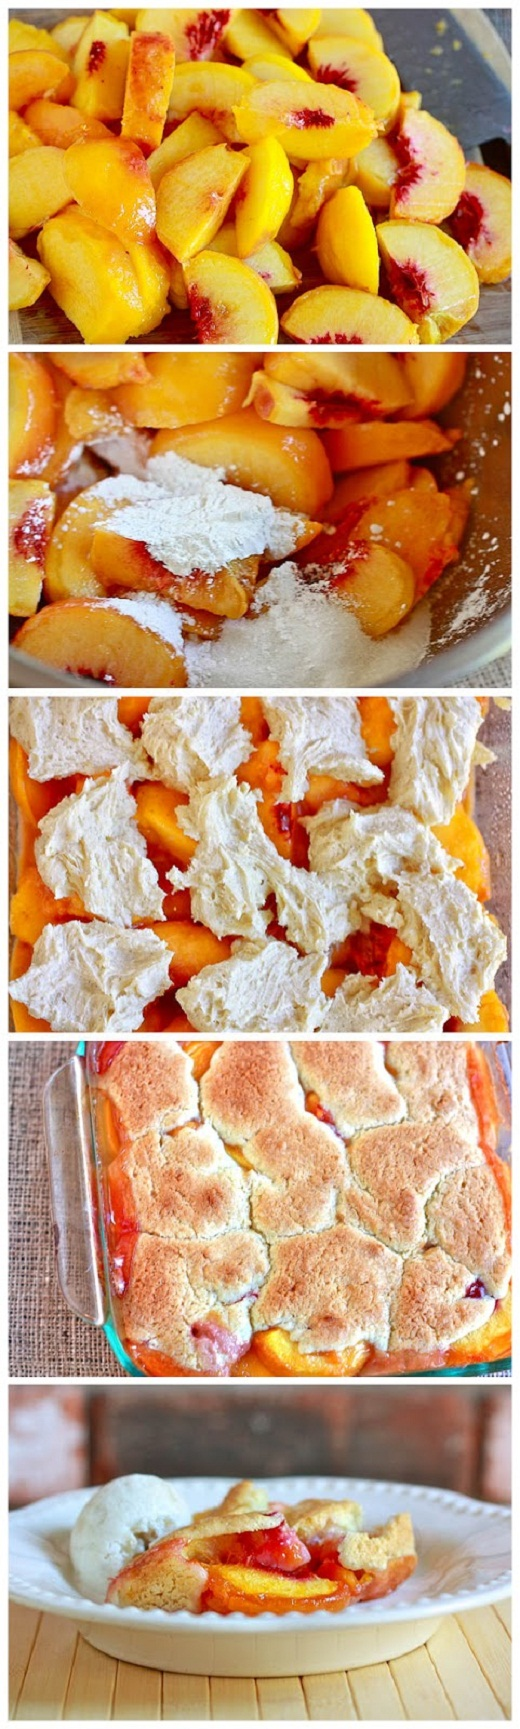 The-Yummiest-Peach-Cobbler-Recipe